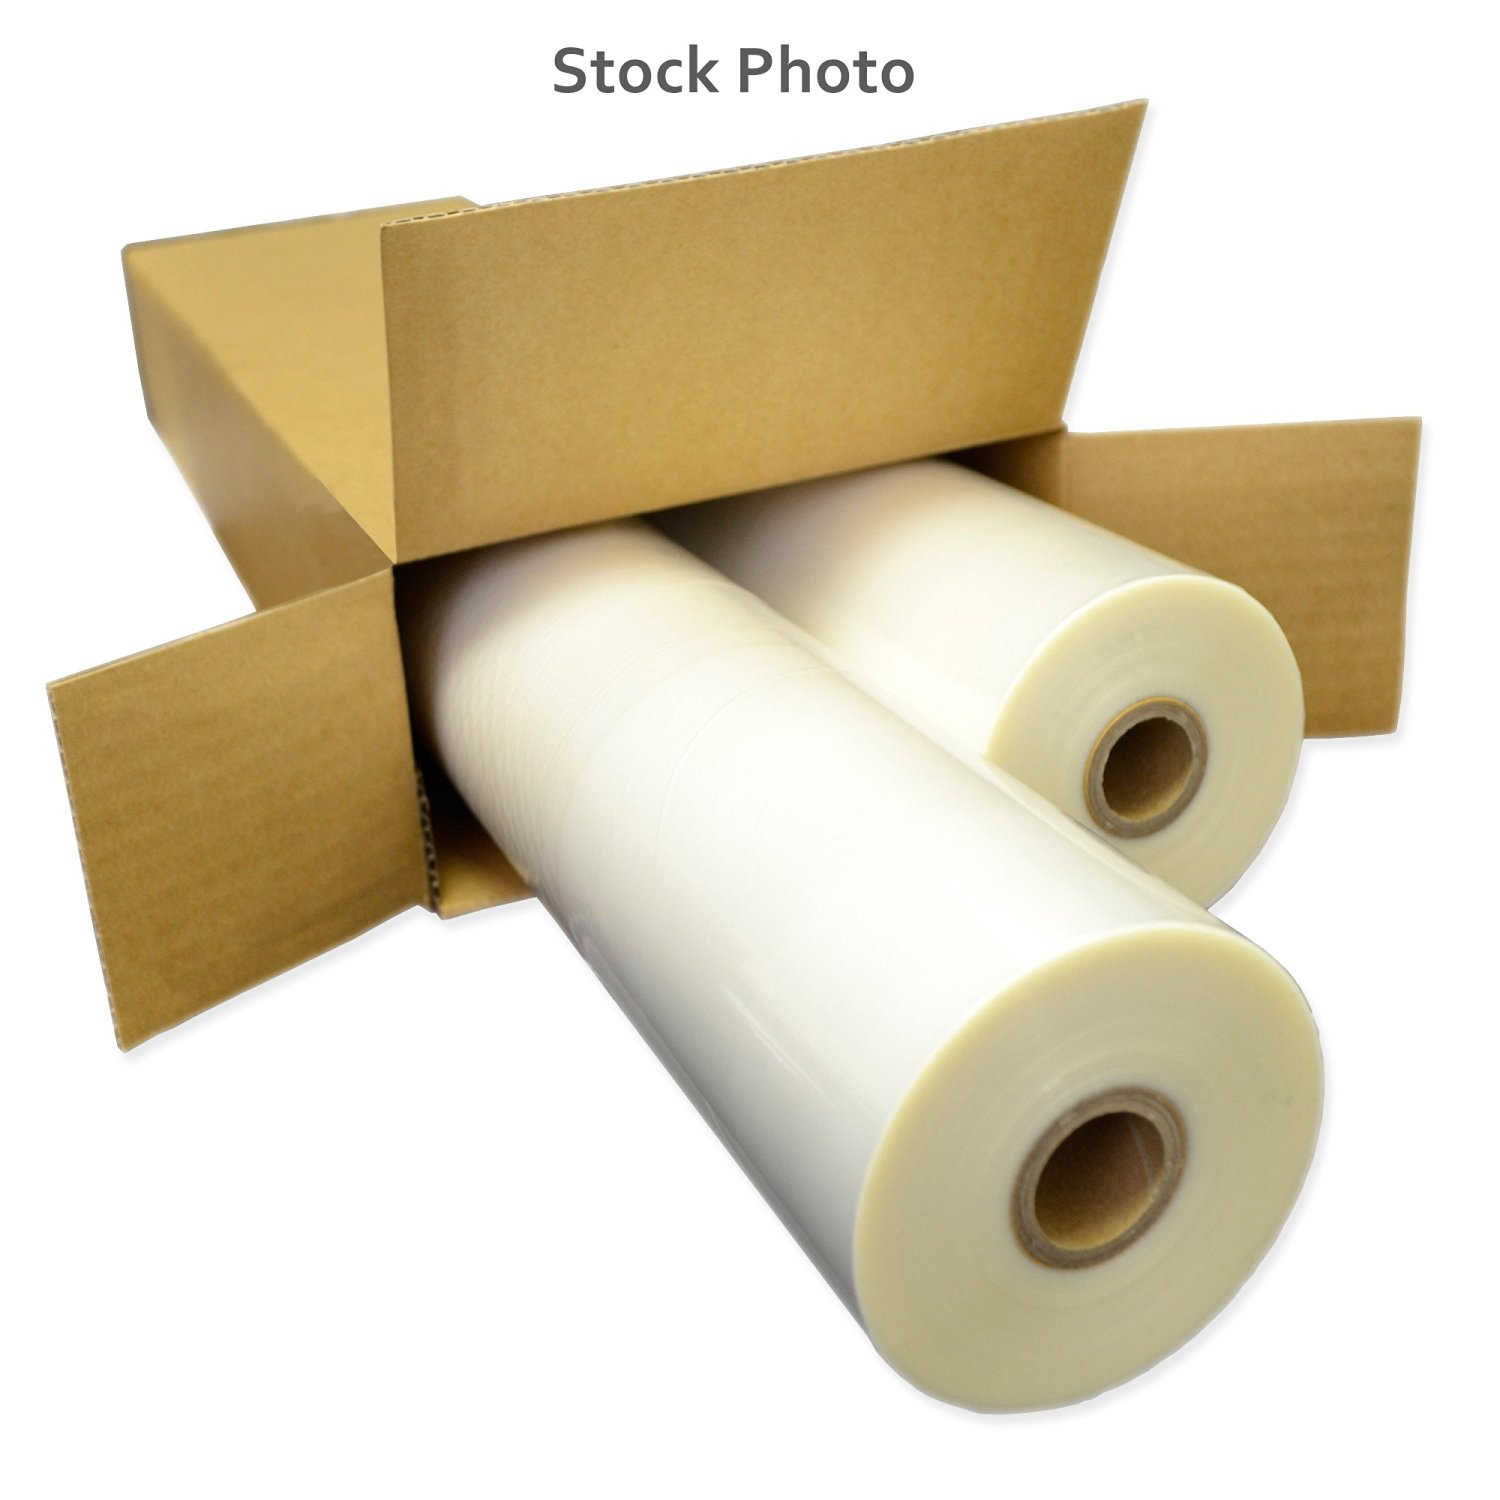 """27"""" Clear 10 Mil Thermal Roll Lamination Film (Quantity 2) w/ 1"""" Core from ABC Office"""